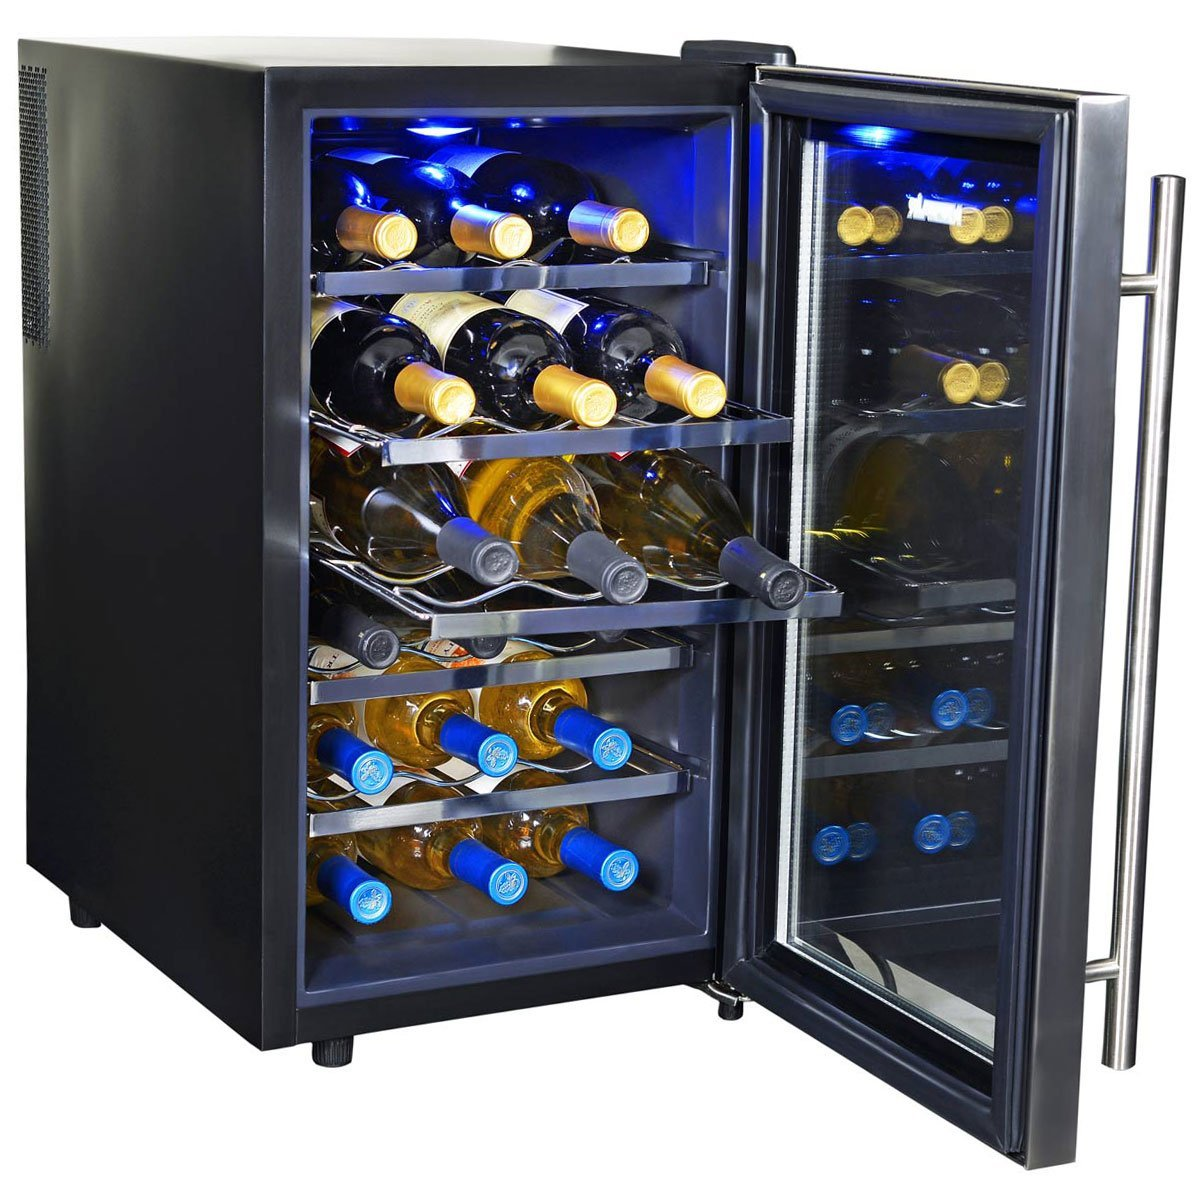 NewAir 18 Bottle Thermoelectric Wine Cooler-AW-181E